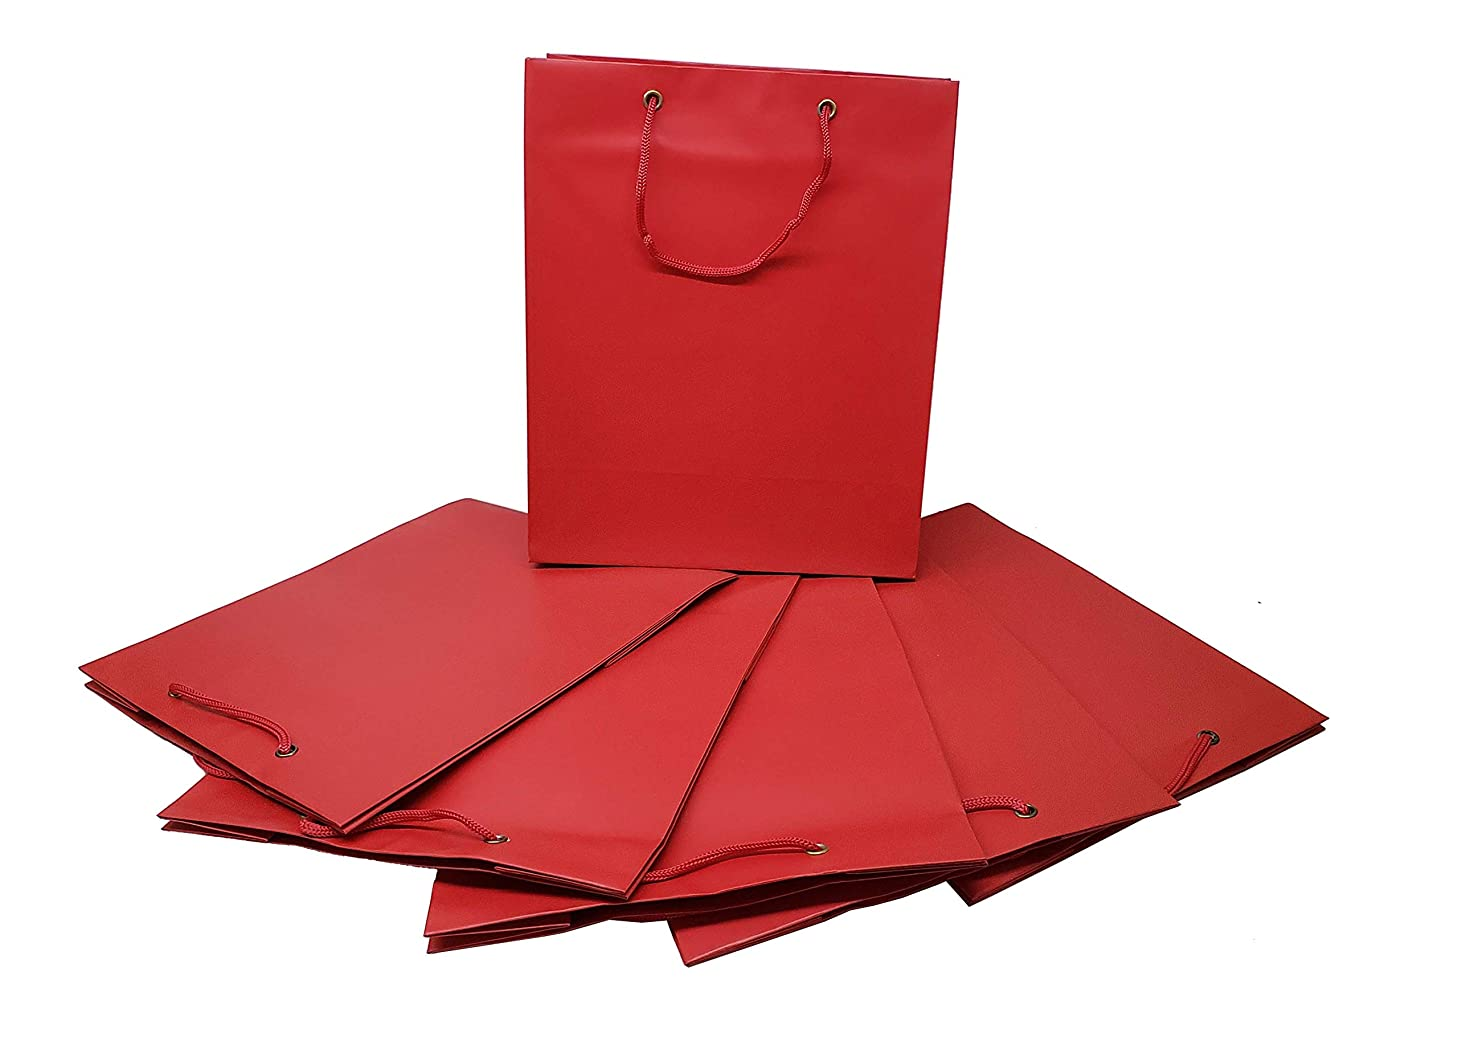 """Pack of 6 Solid Colored Gift Bags (12"""" h x 10"""" w x 5"""" d) with String Handles (Red)"""